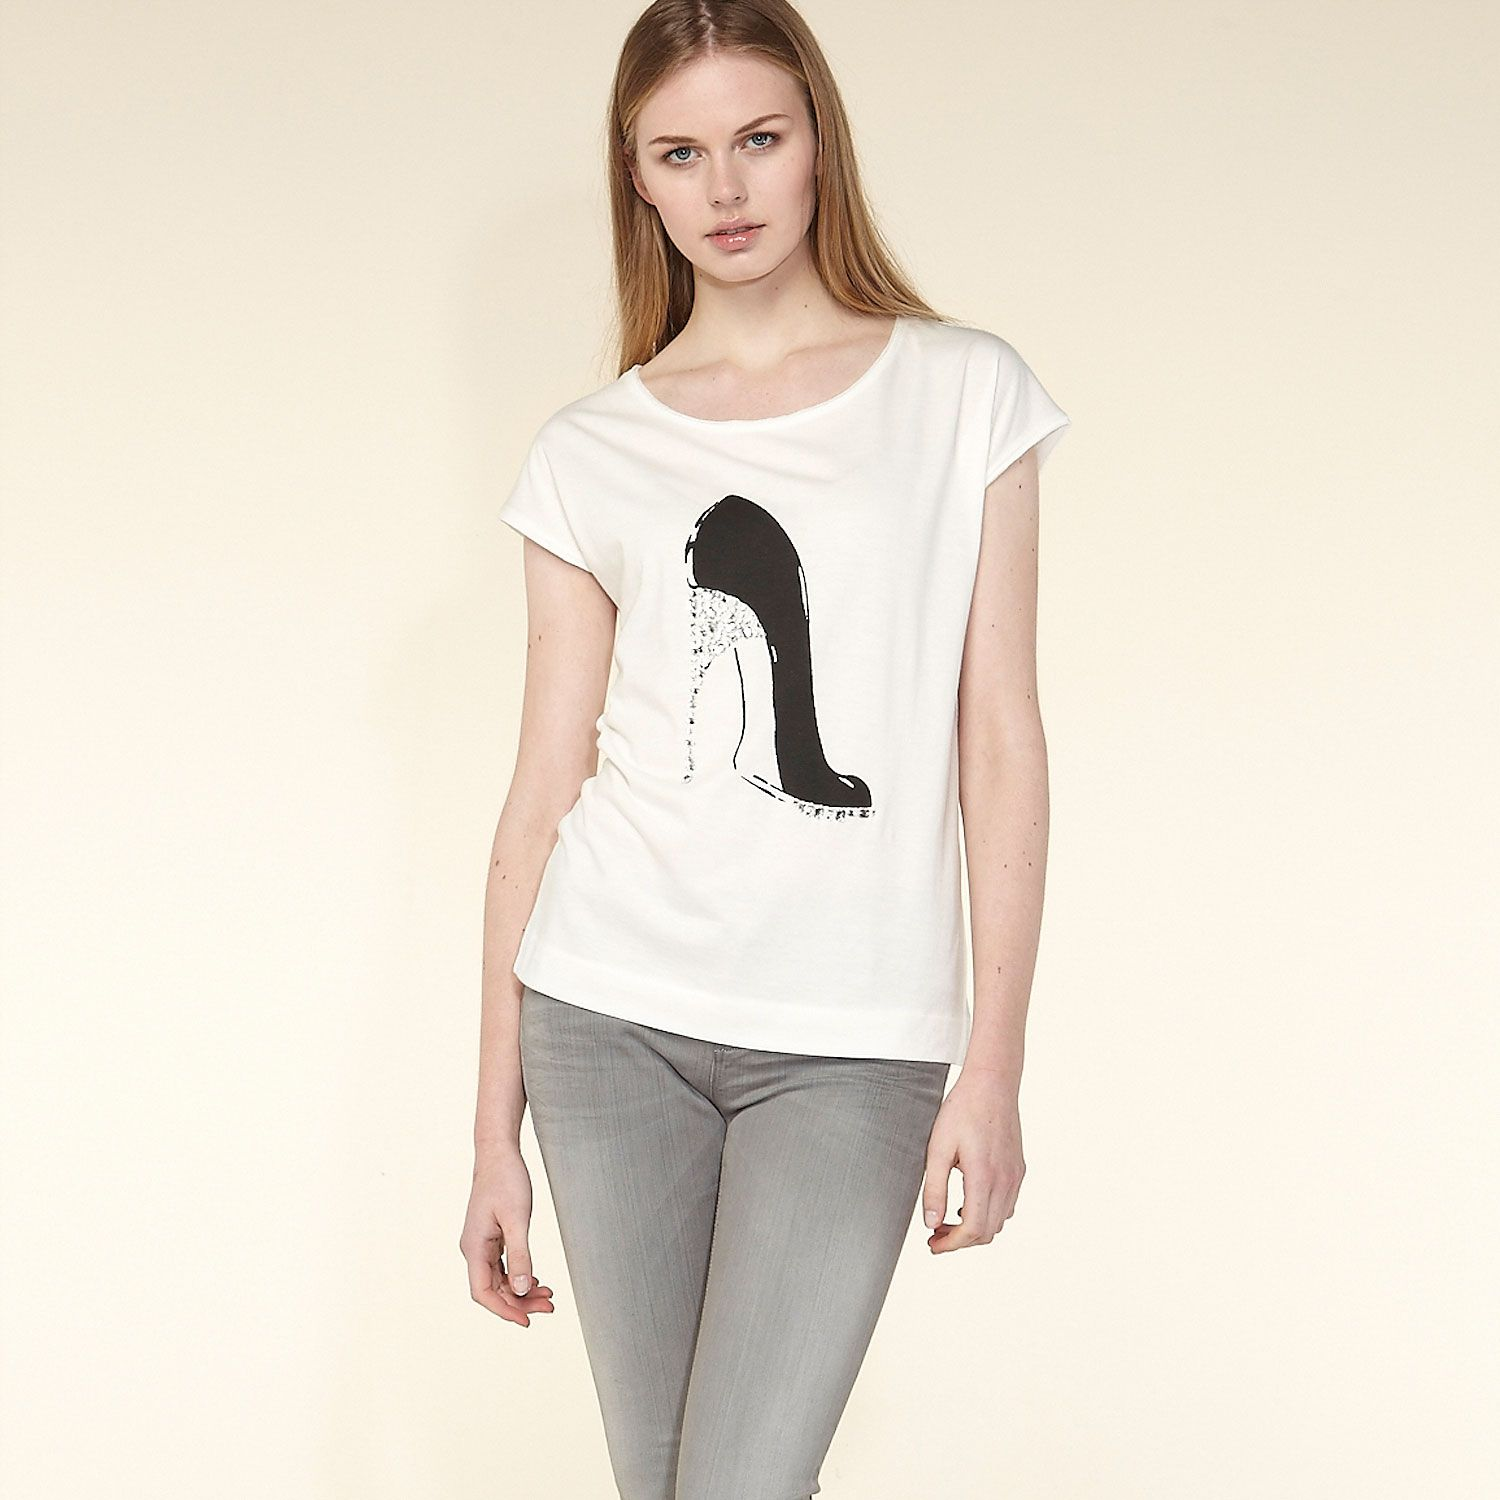 High heel motif t-shirt